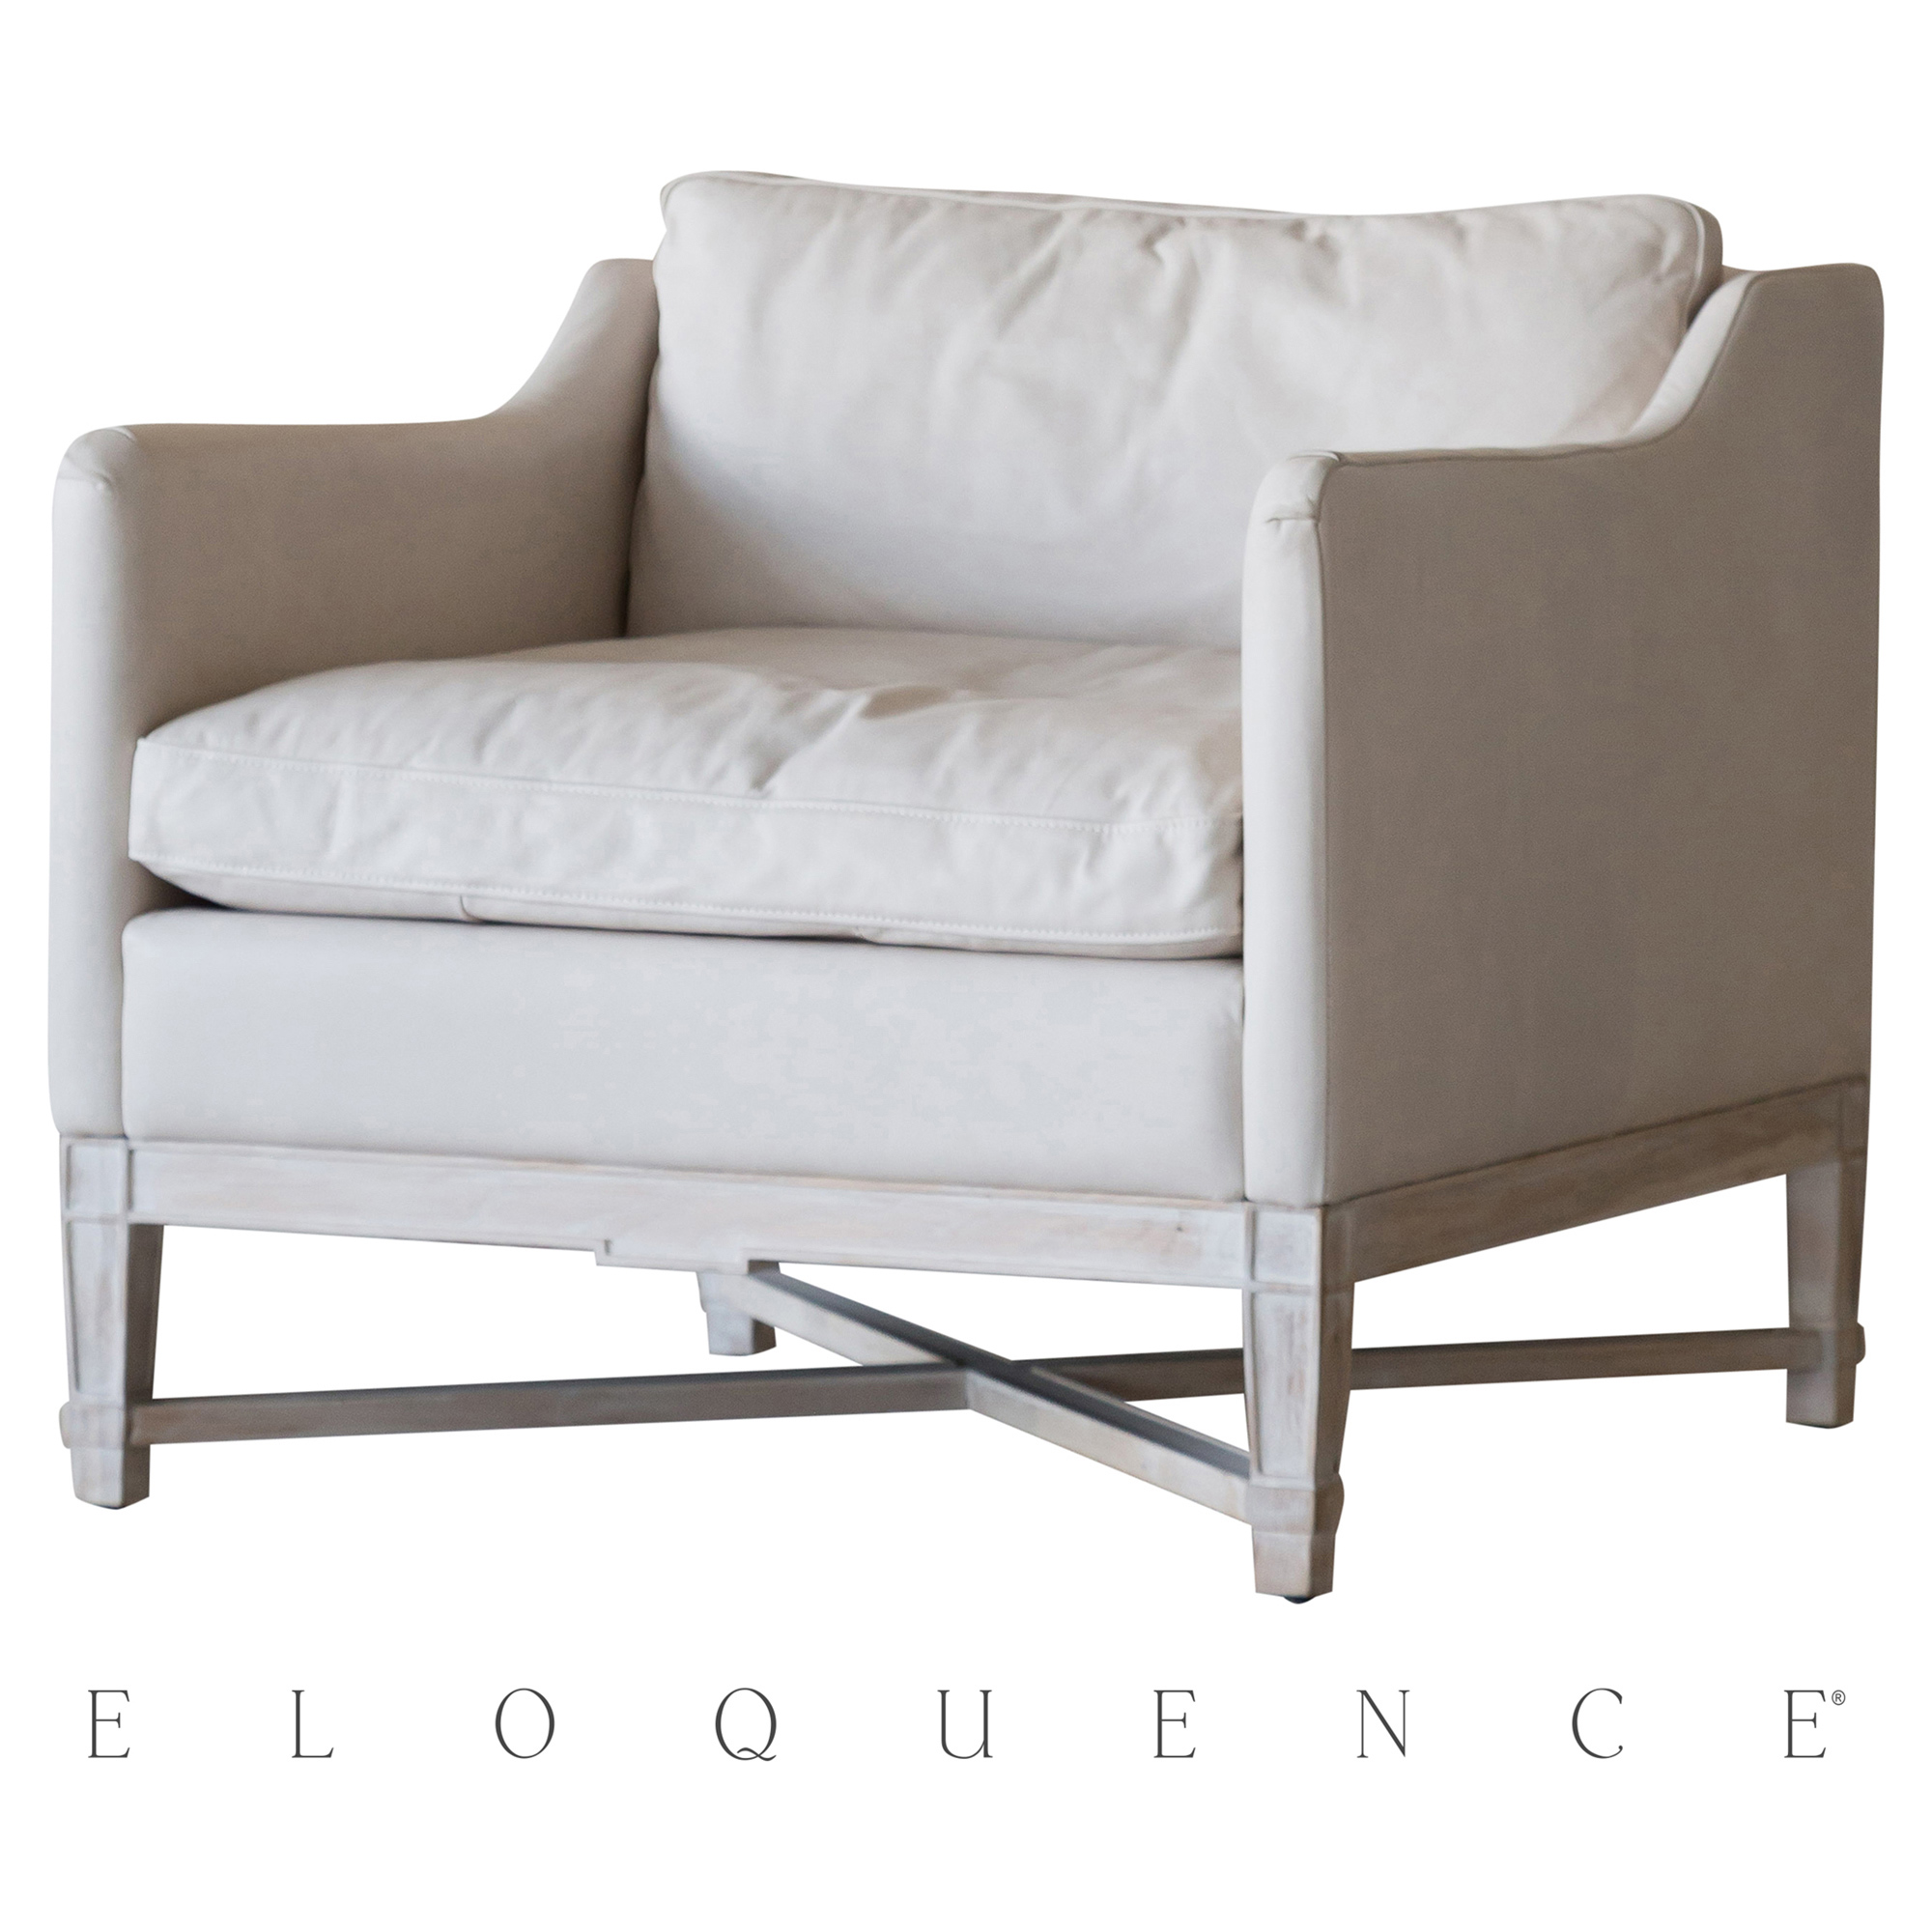 Eloquence® Scandinavian Bergere in Aged Beige Leather